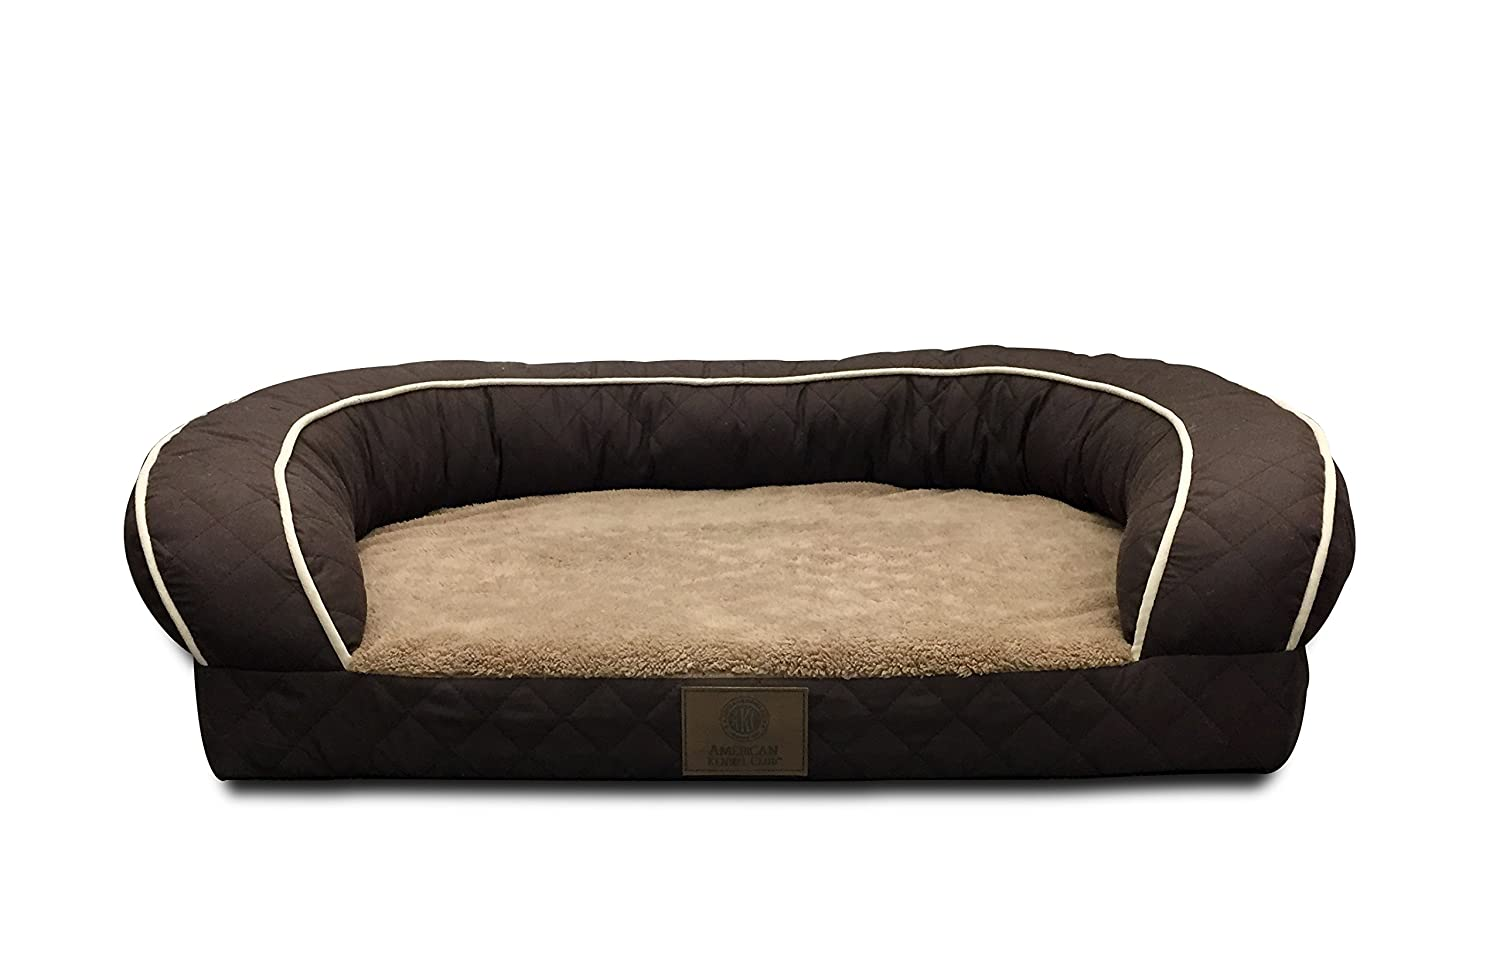 American Kennel Club AKC1852BROWN Orthopedic Sofa Bed Quilted